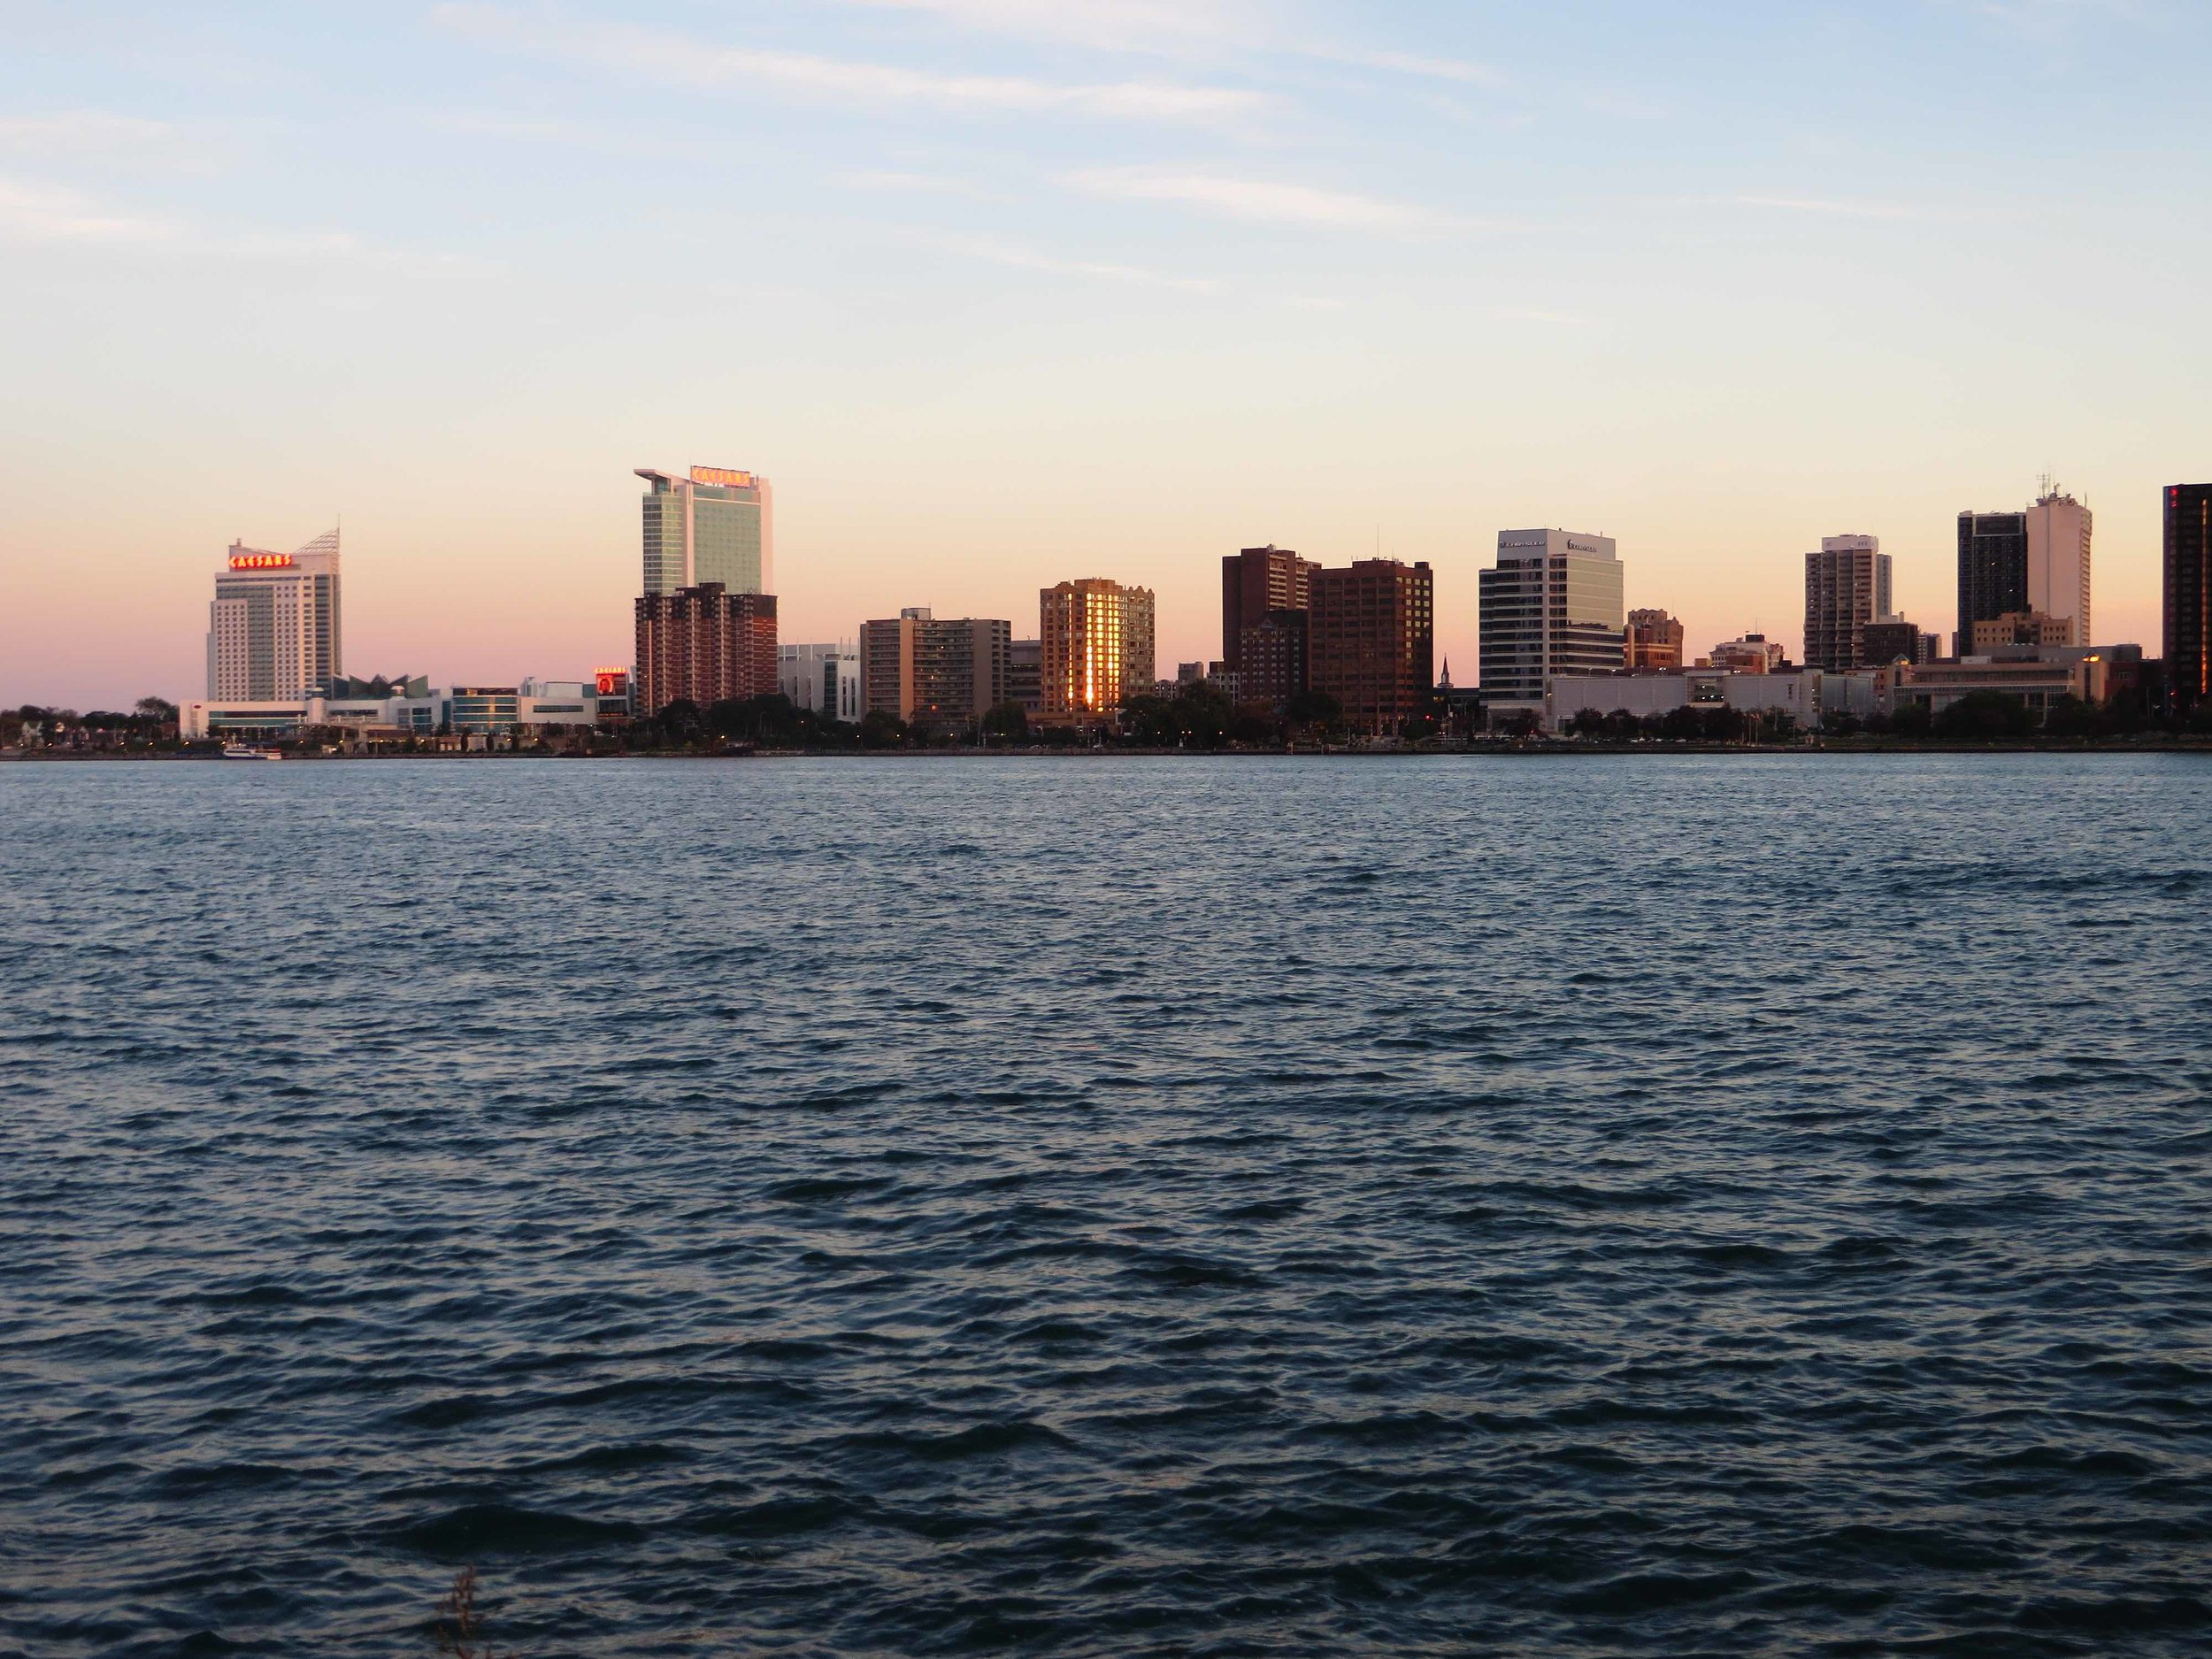 Windsor, ON, as viewed from Detroit, MI. (Image via Wikimedia Commons)